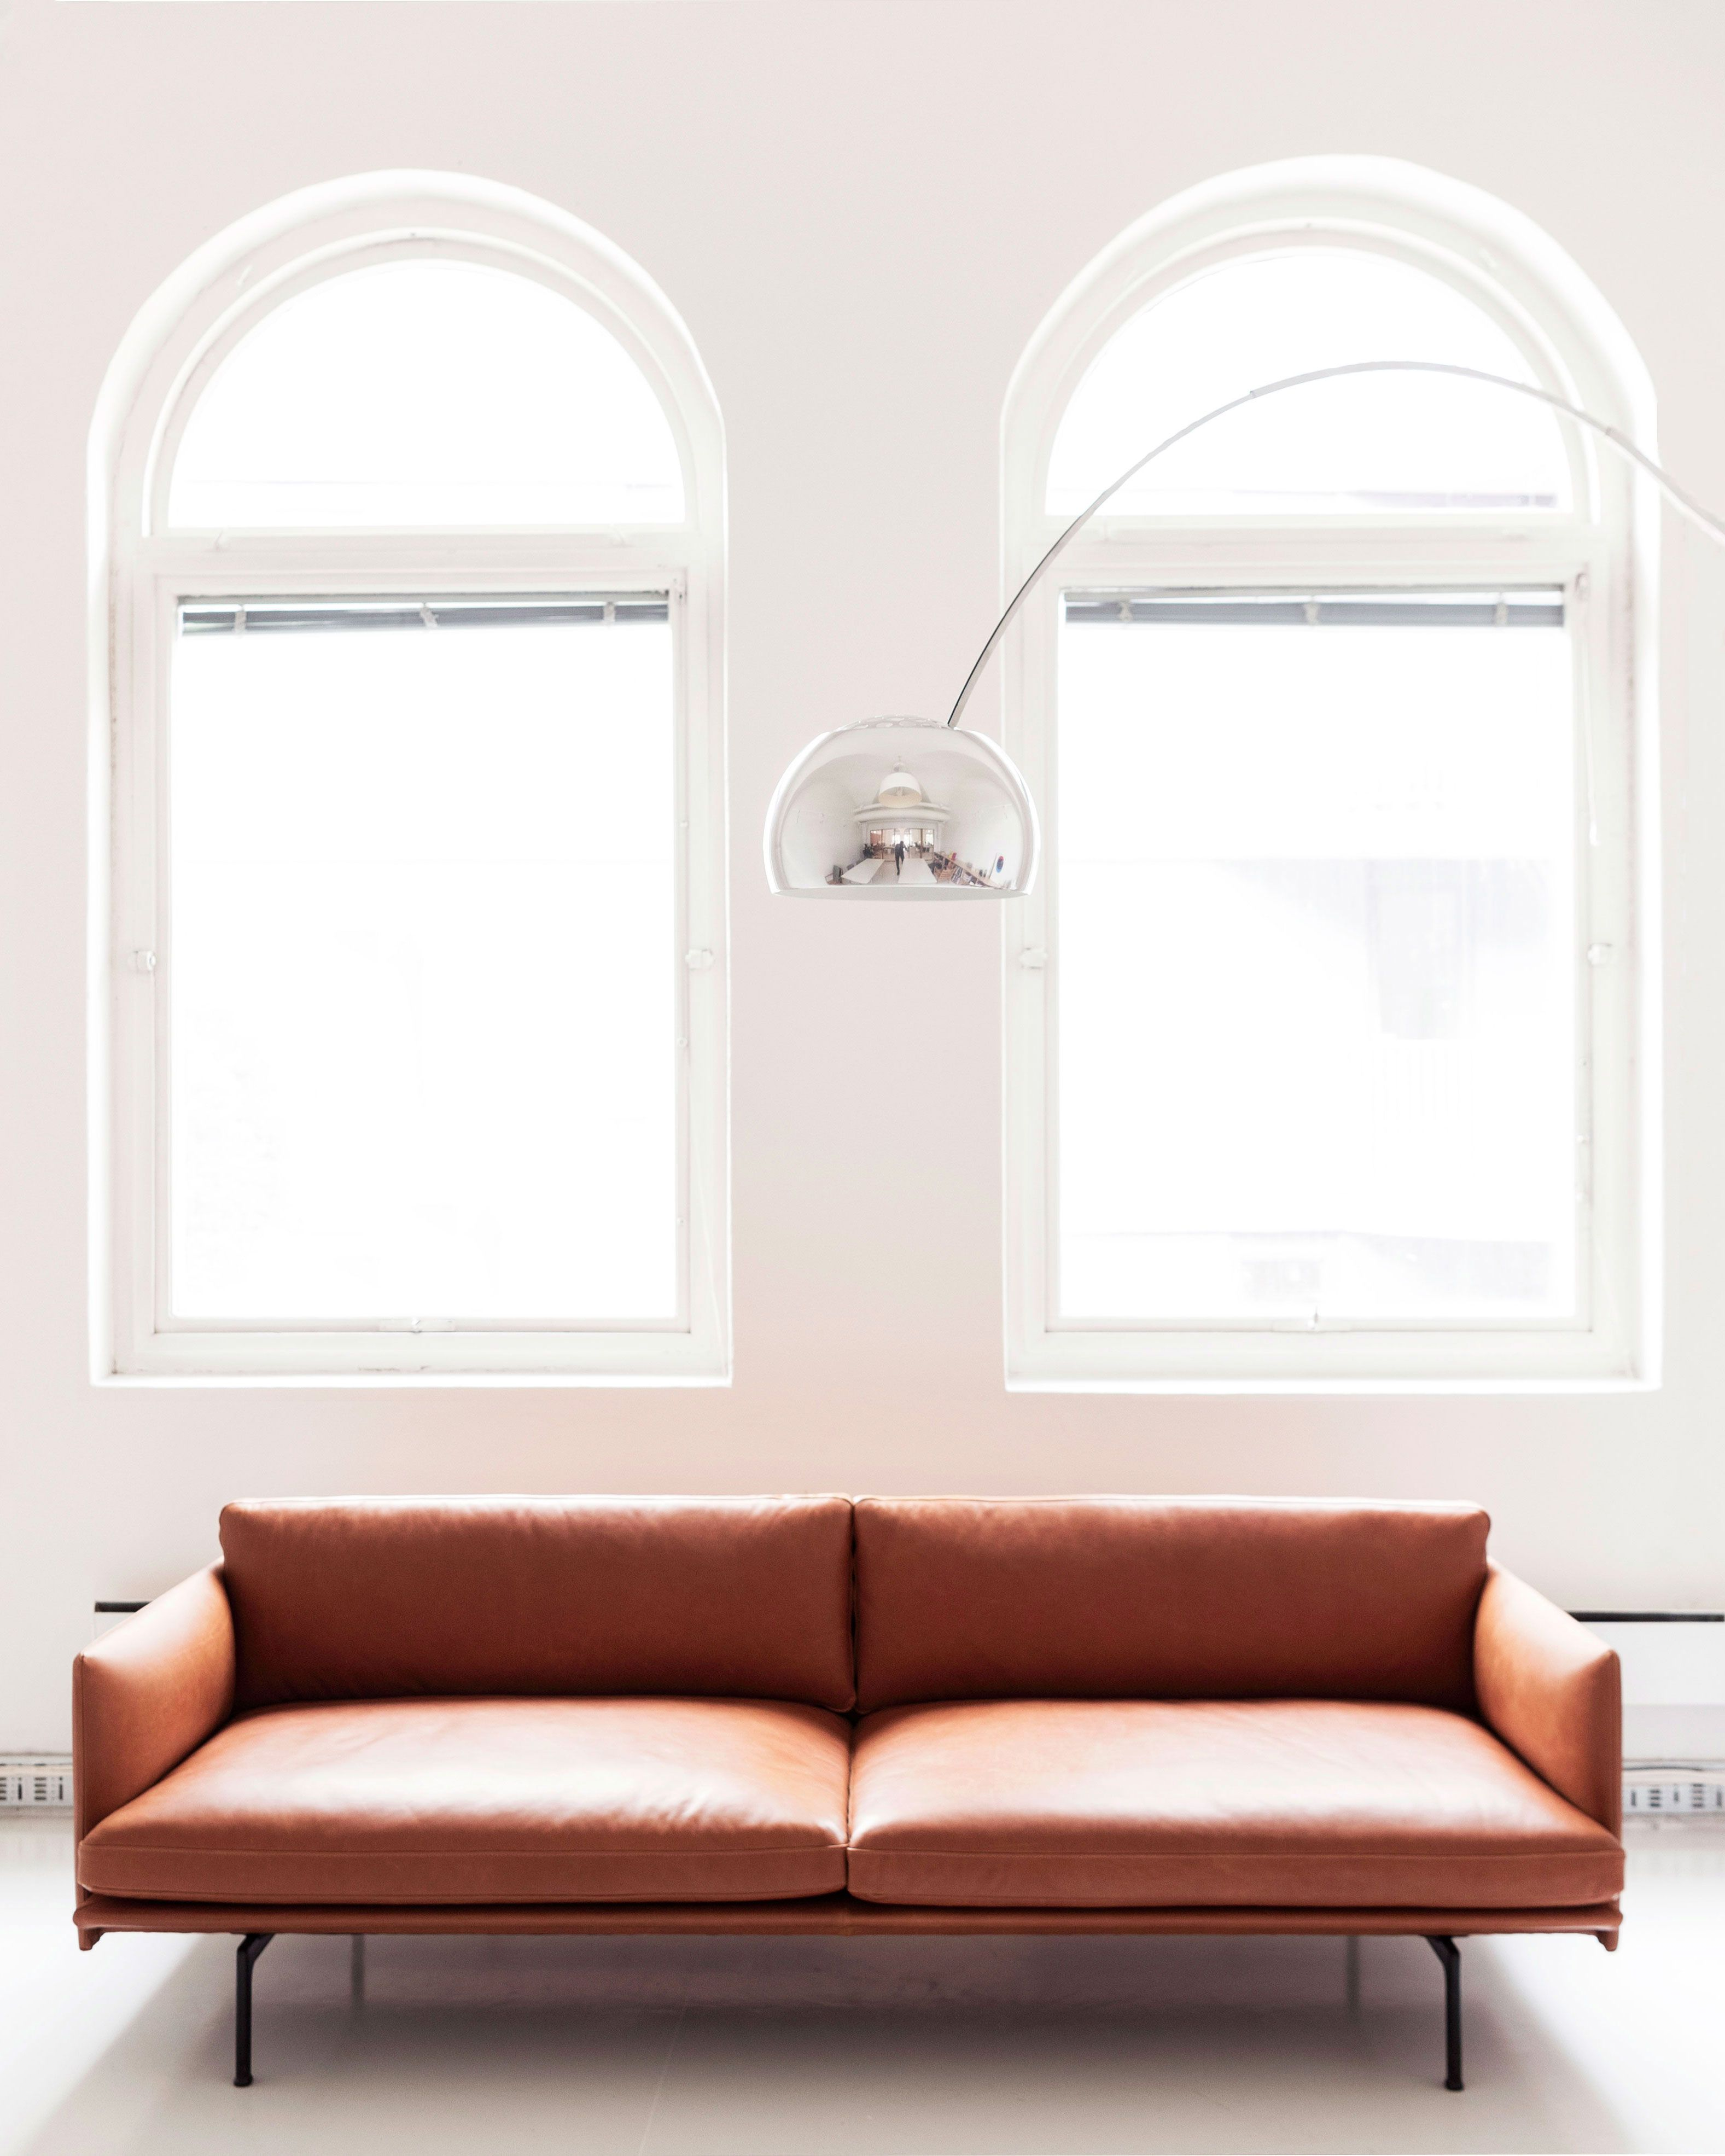 Timeless sofa inspiration from Muuto: The Outline Series ...